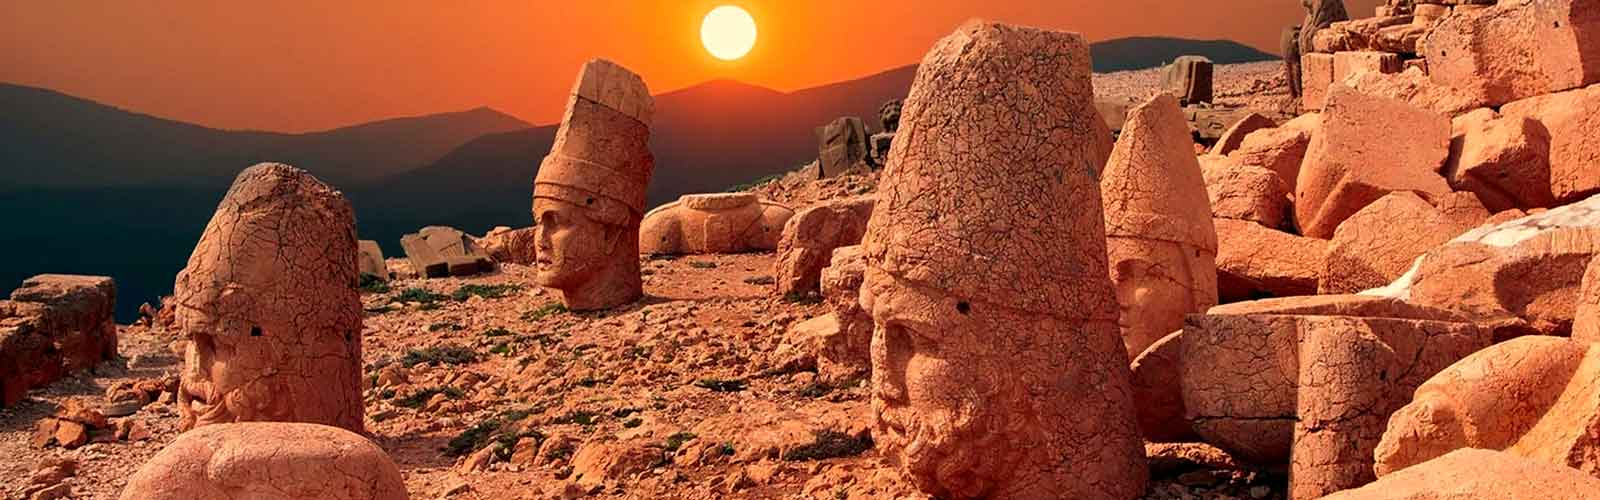 Sunset at Mt. Nemrut